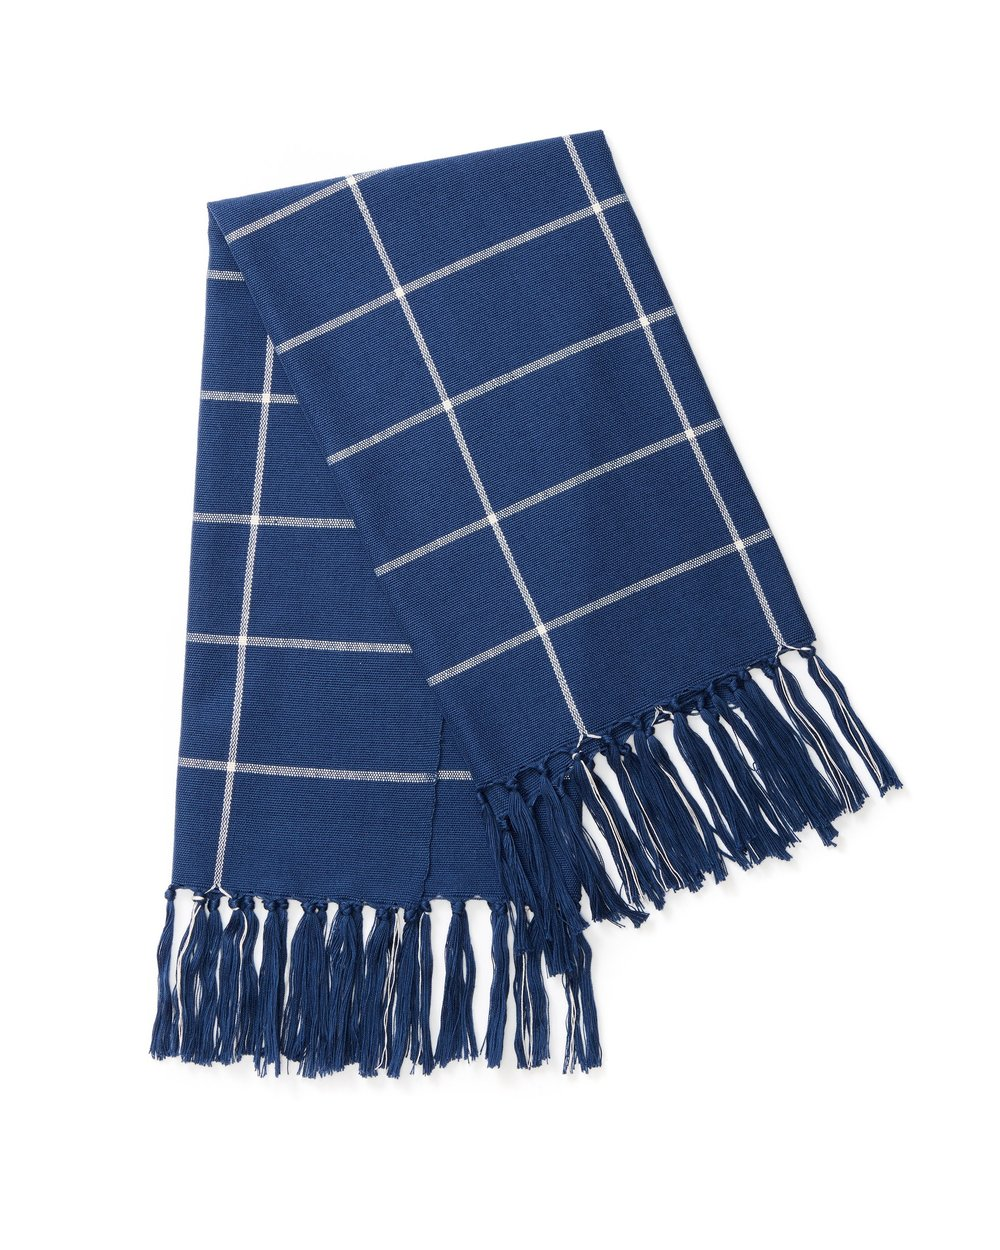 TEA TOWEL - INDIGO GRID  $28.00